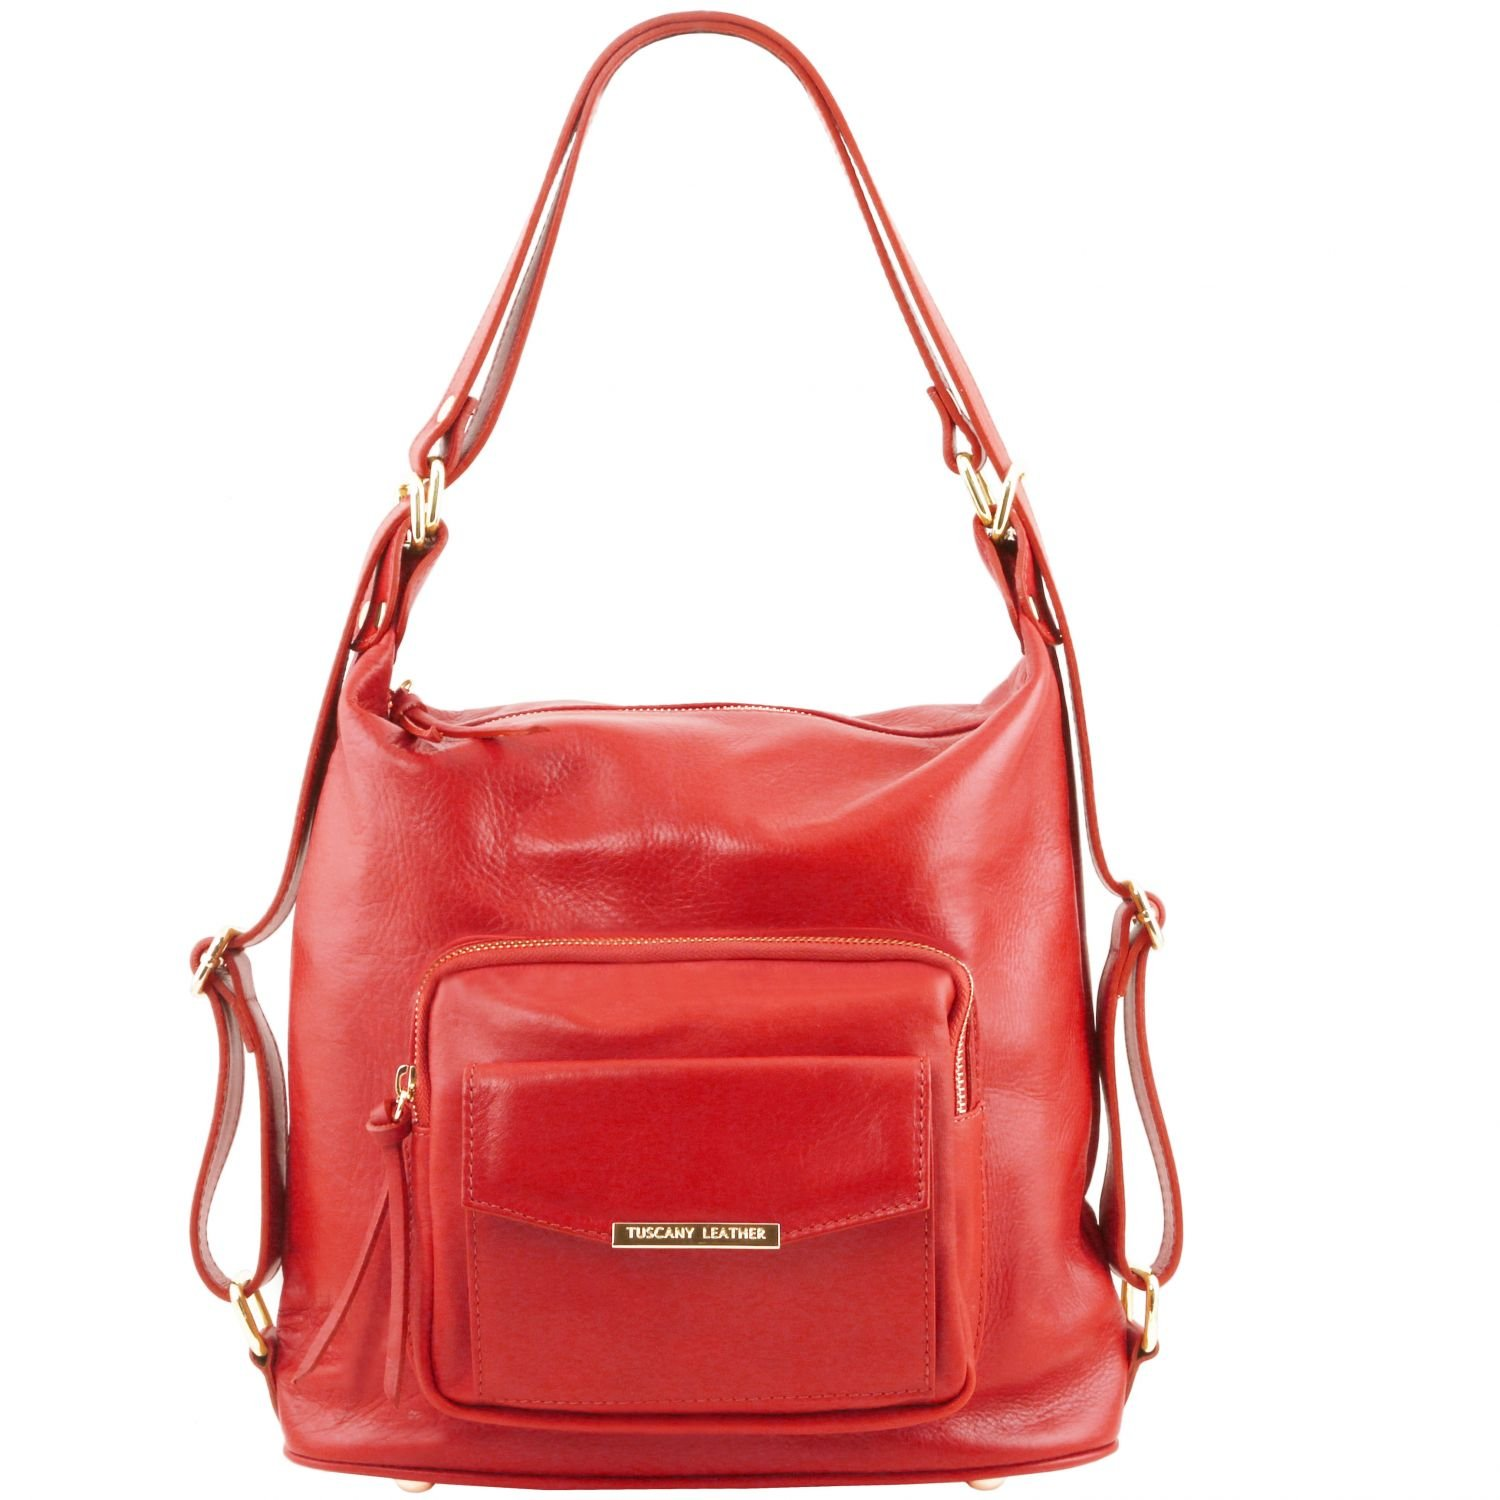 Tuscany Leather TL Bag Leather convertible bag Lipstick Red